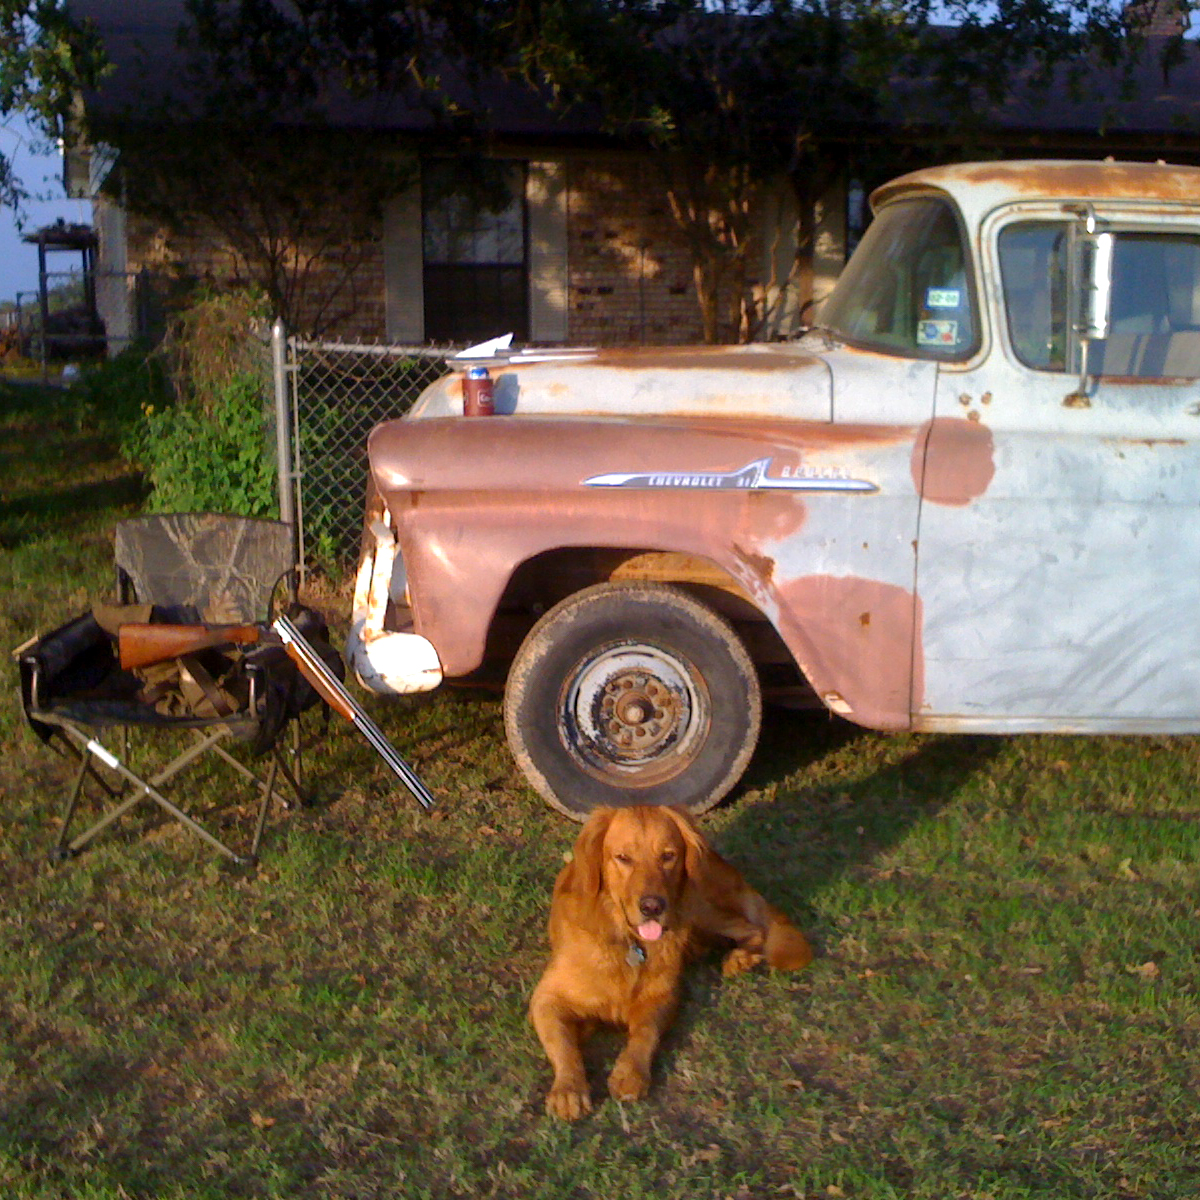 Dog and truck